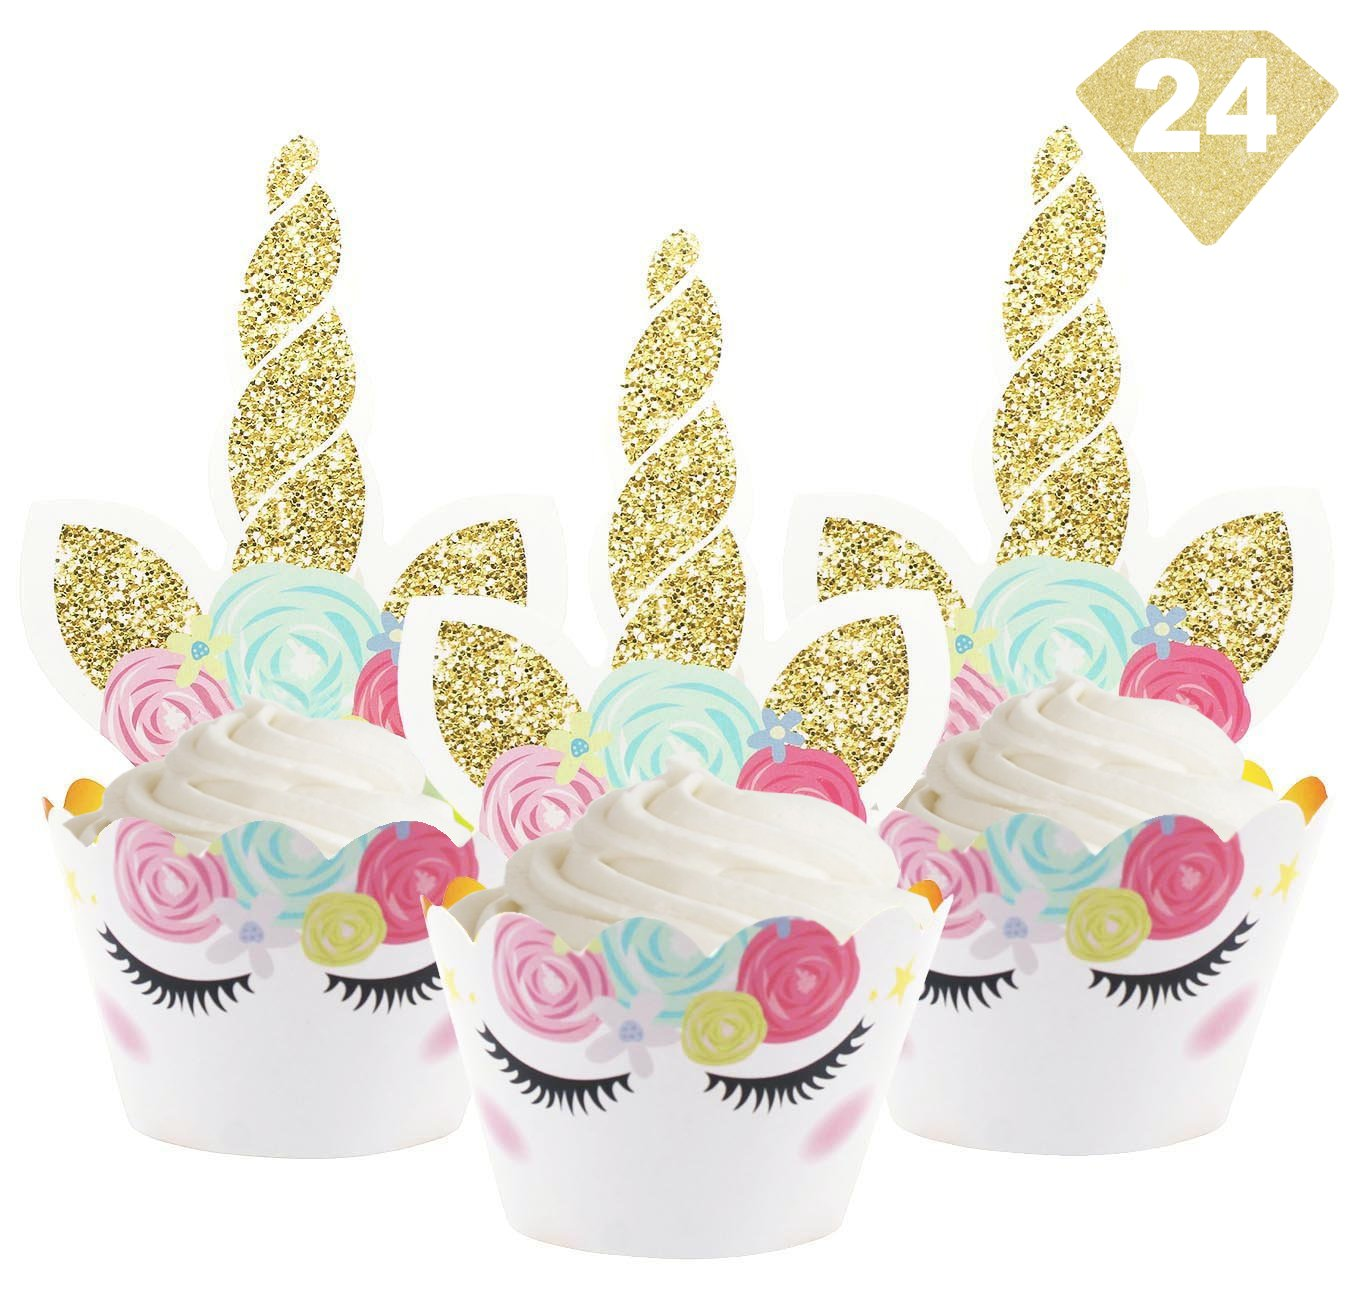 UNICORN MAGIC Unicorn Cupcake Toppers Wrappers - Golden and Rainbow Colors - Kids and Girls Birthday Party - Baby Shower - Party Decoration & Favors